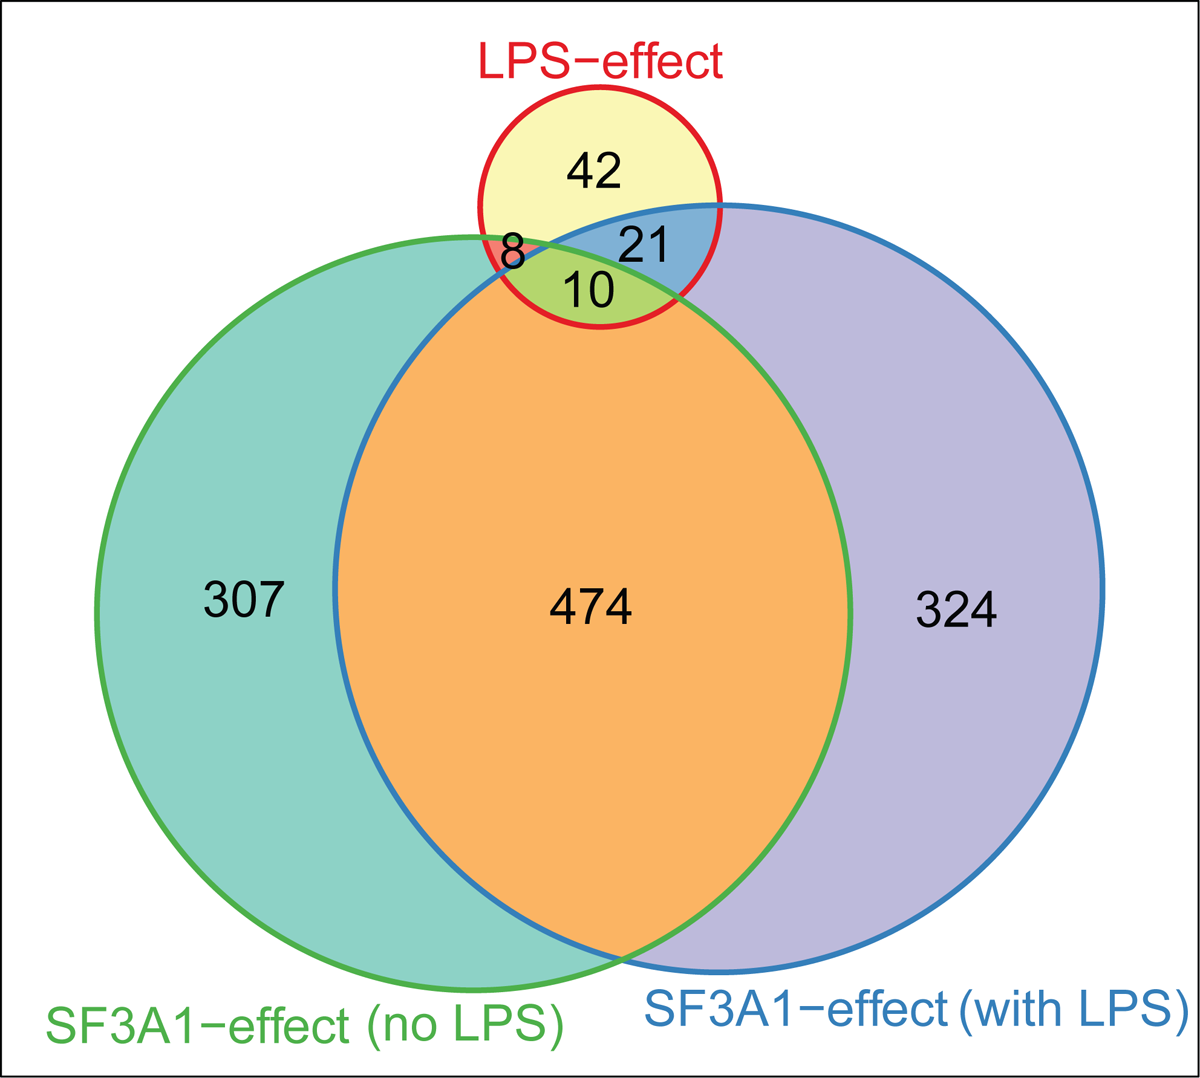 LPS challenge and SF3a1 inhibition affect pre-mRNA splicing of a common set of genes.